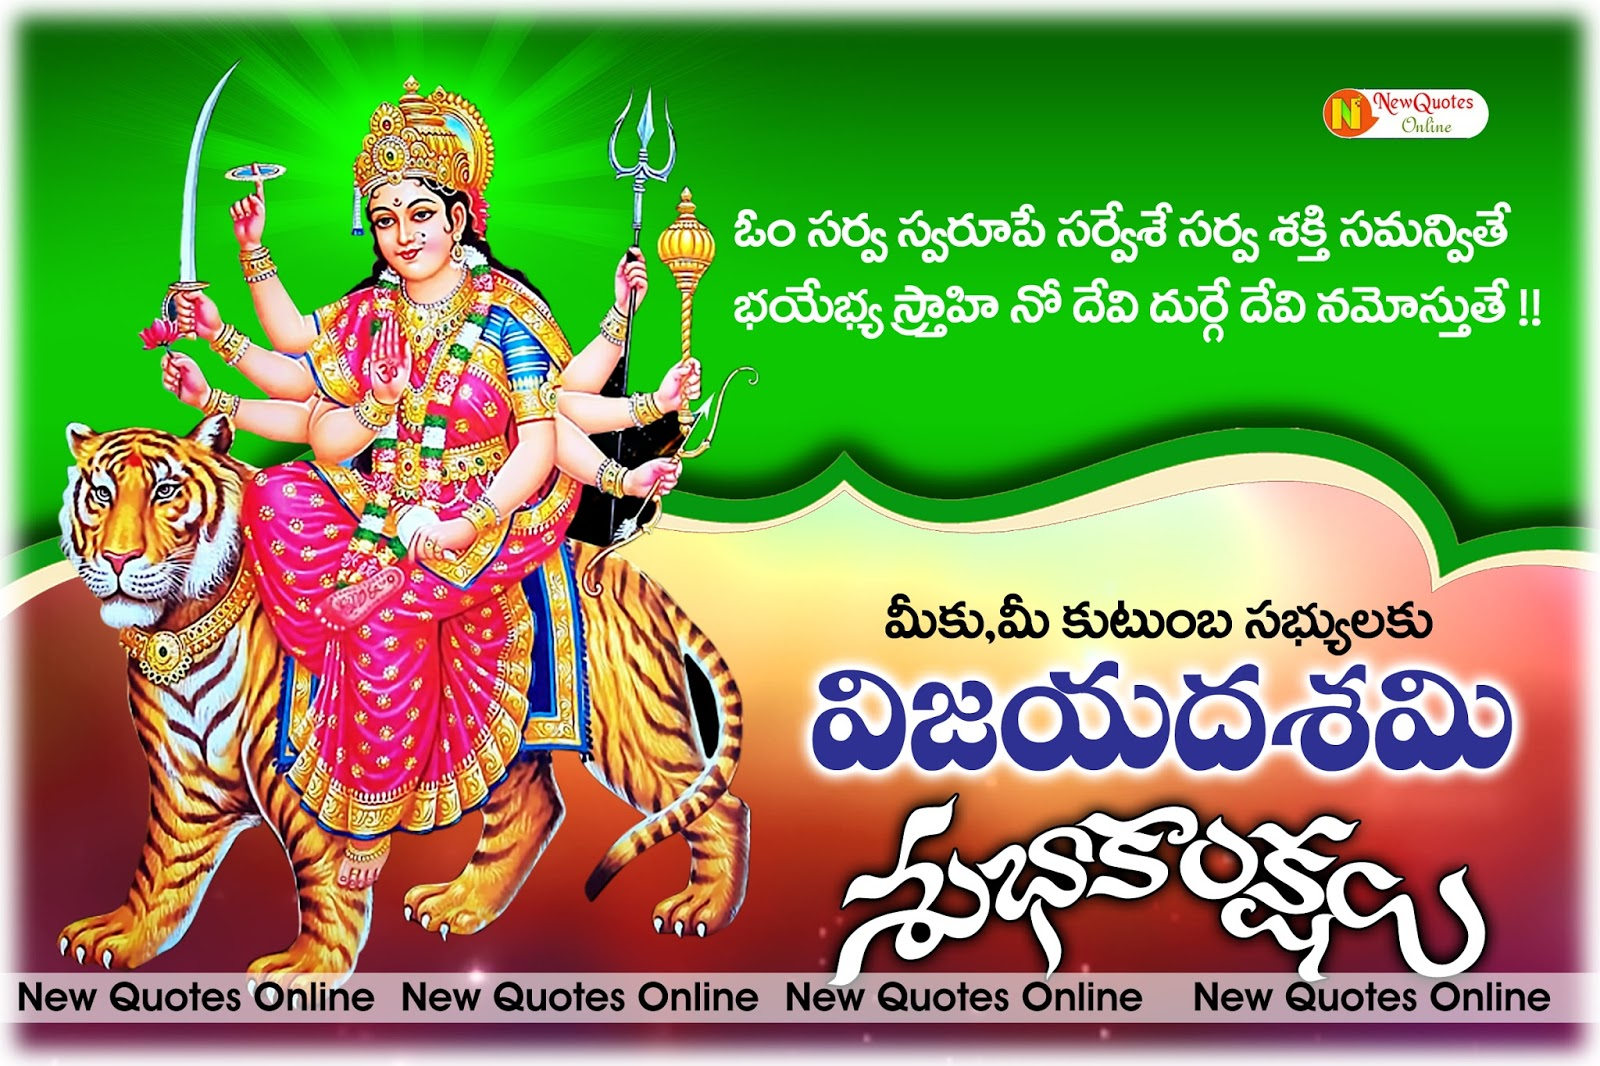 Durga mata greetings in telugu best vijayadashami quotes in telugu durga matha happy dussehra 2016 images hd quotes m4hsunfo